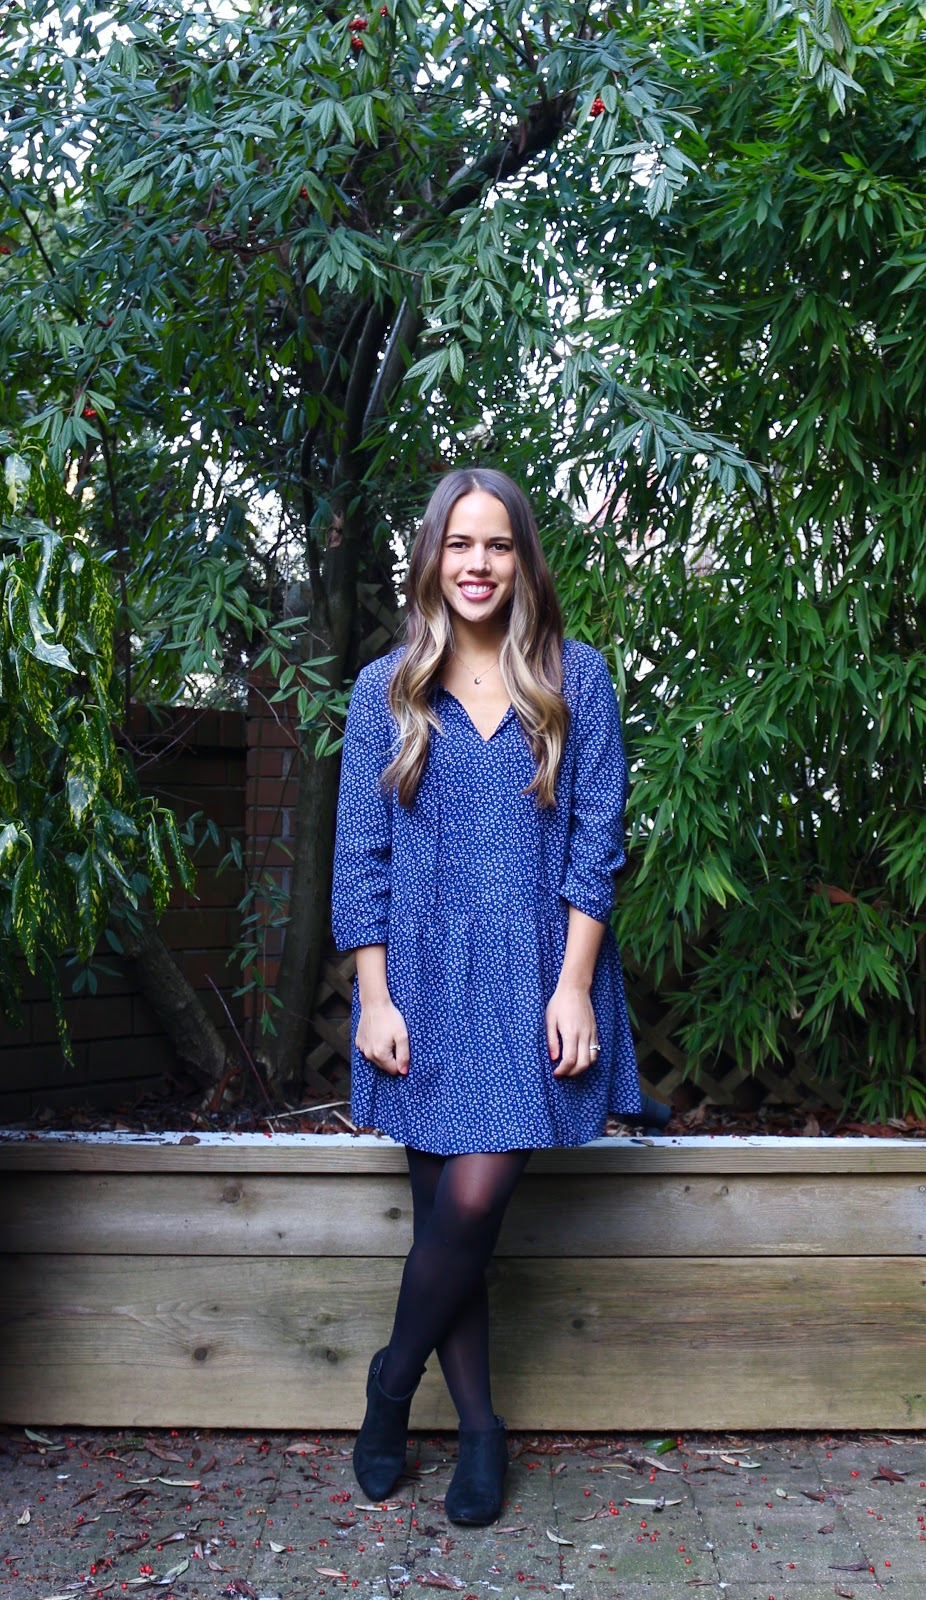 Jules in Flats - Simple Dress + Booties Work Outfit (Business Casual Winter Workwear on a Budget)